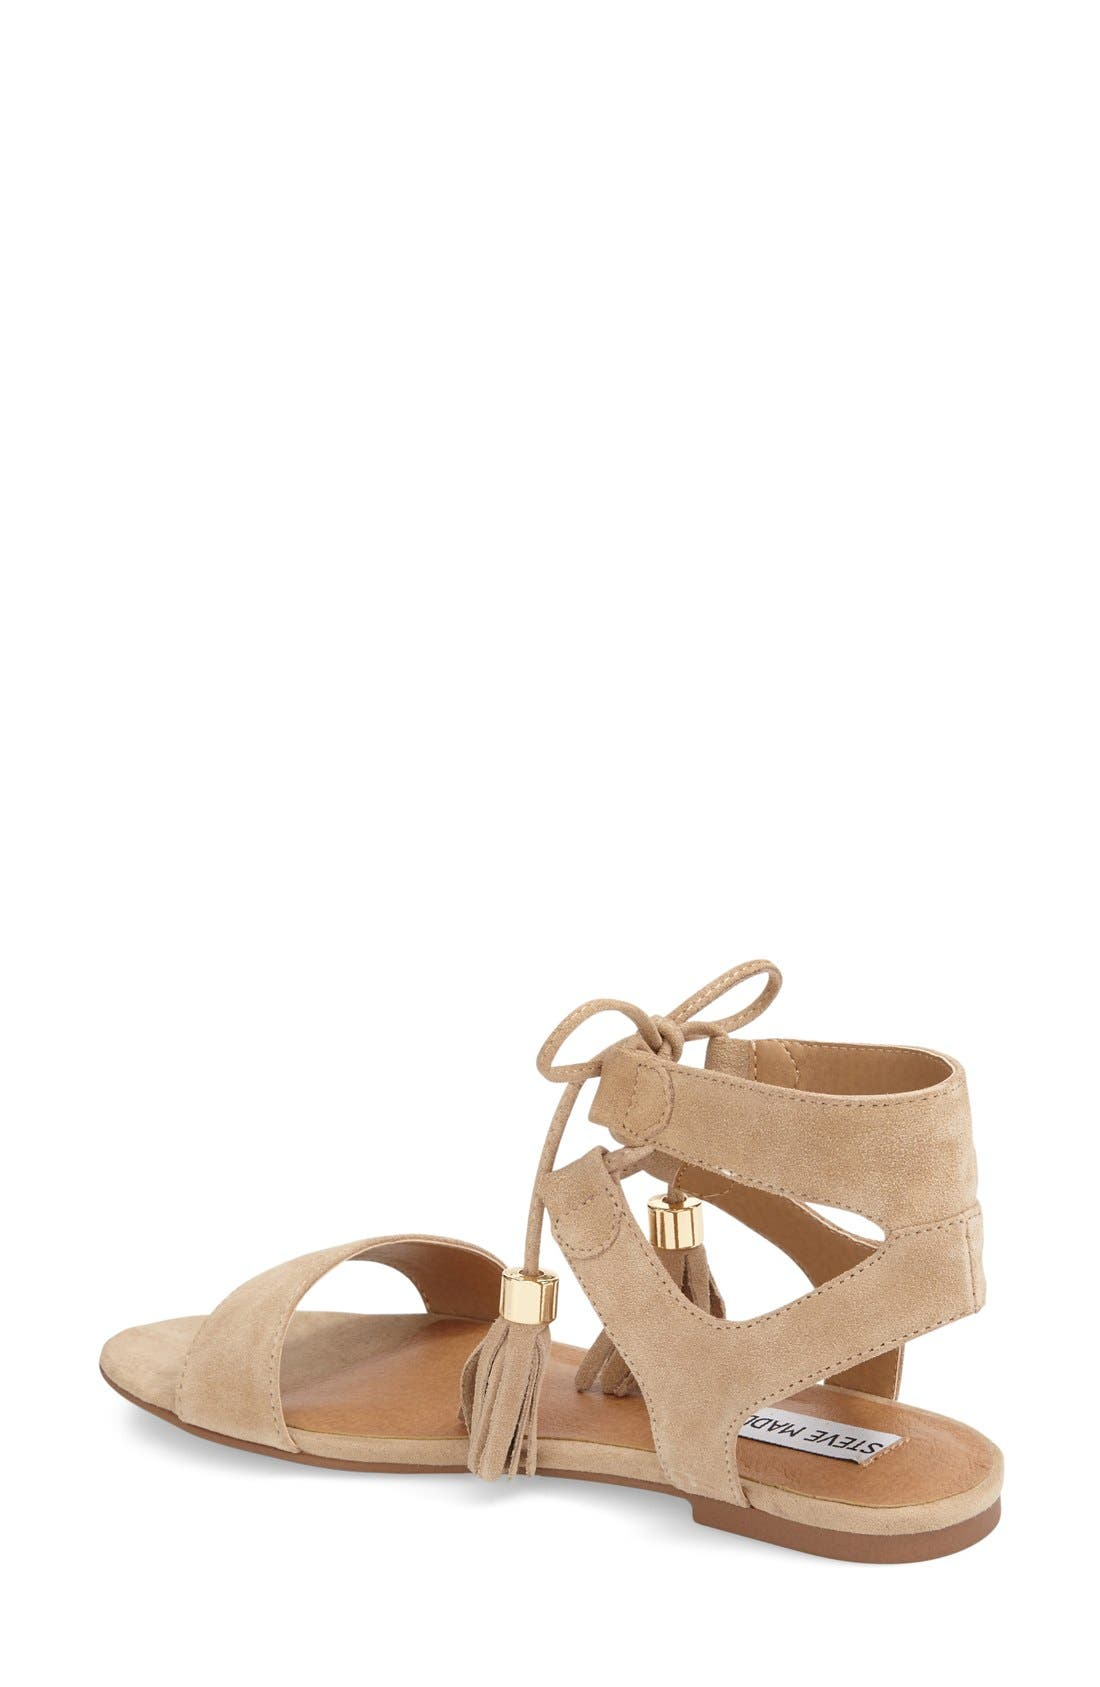 STEVE MADDEN, 'Elivait' Sandal, Alternate thumbnail 2, color, 250